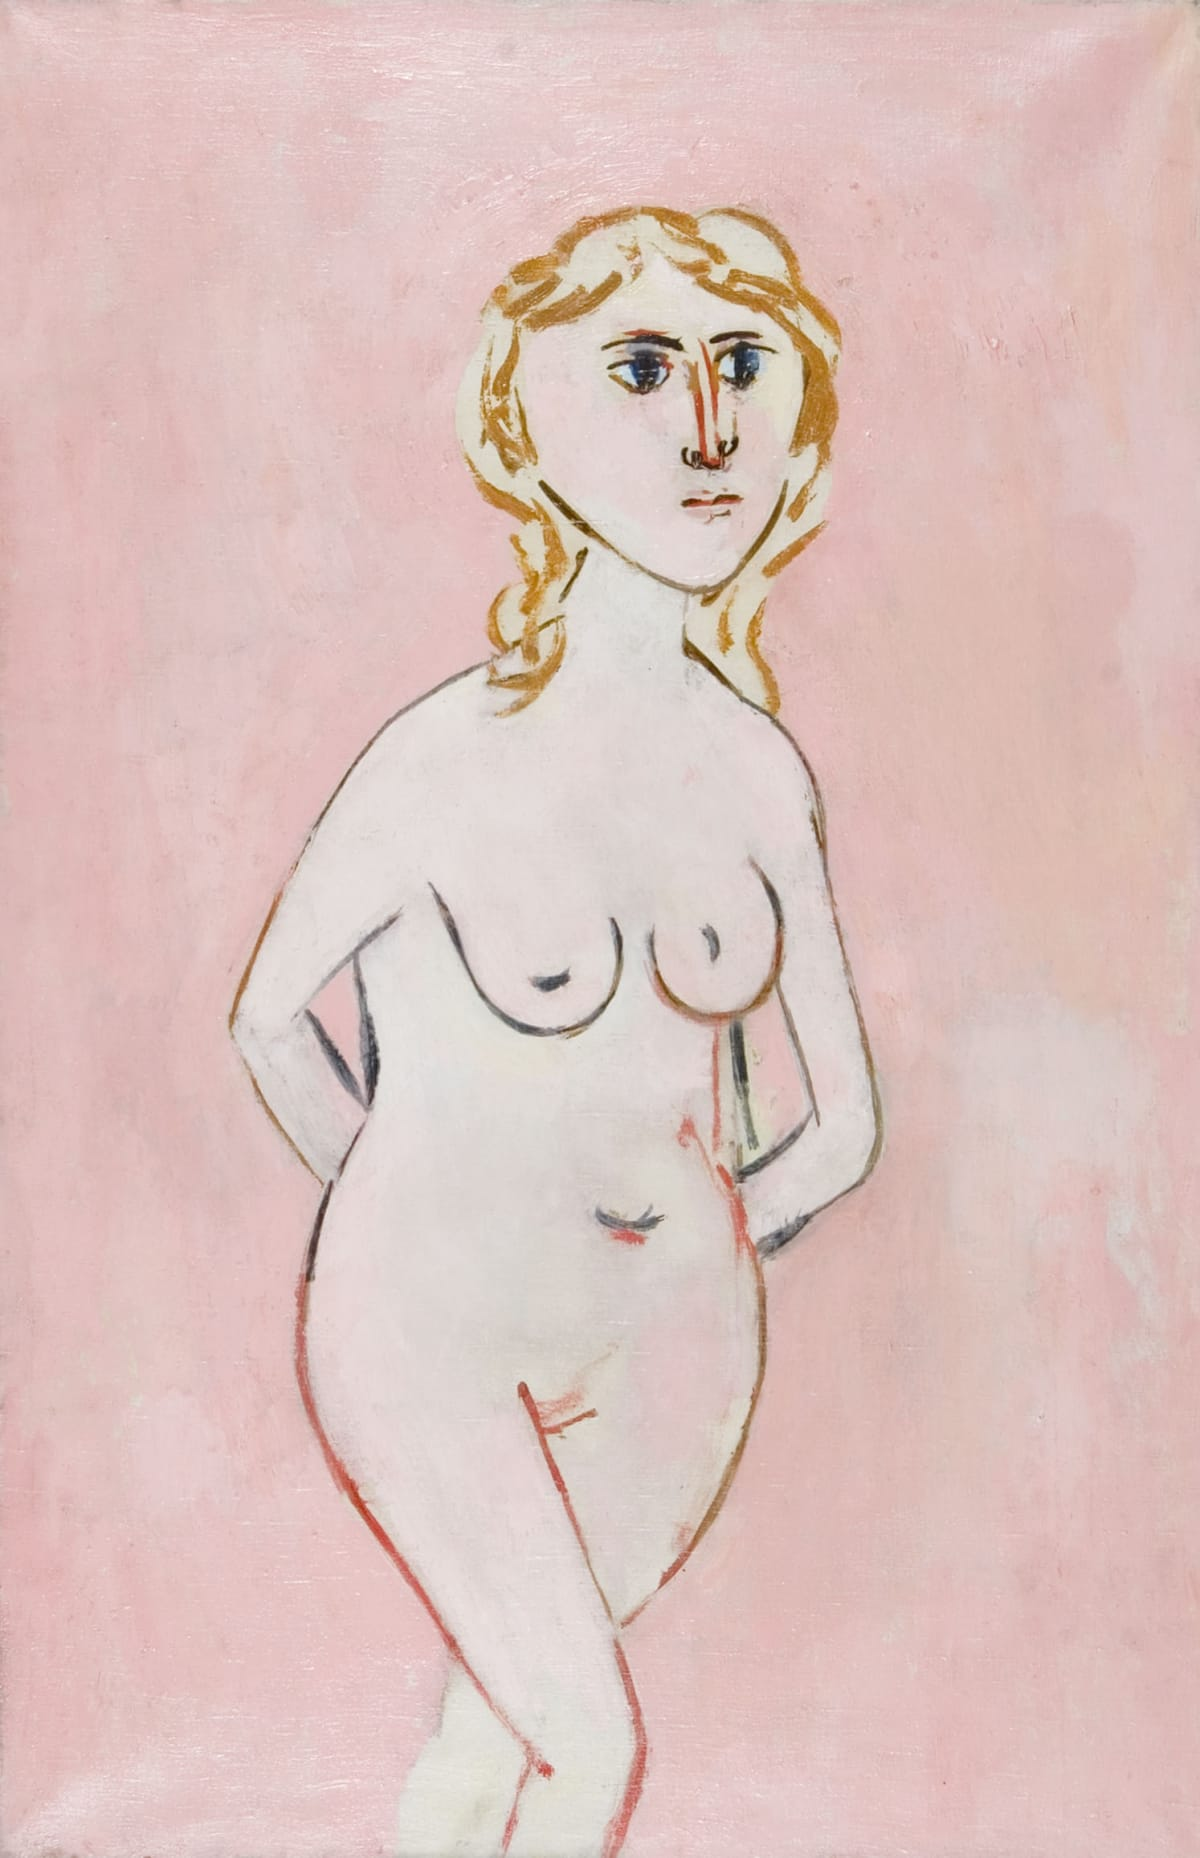 Standing nude on a pink ground Dated Sept' 1951 verso Oil on canvas 36 x 24 inches